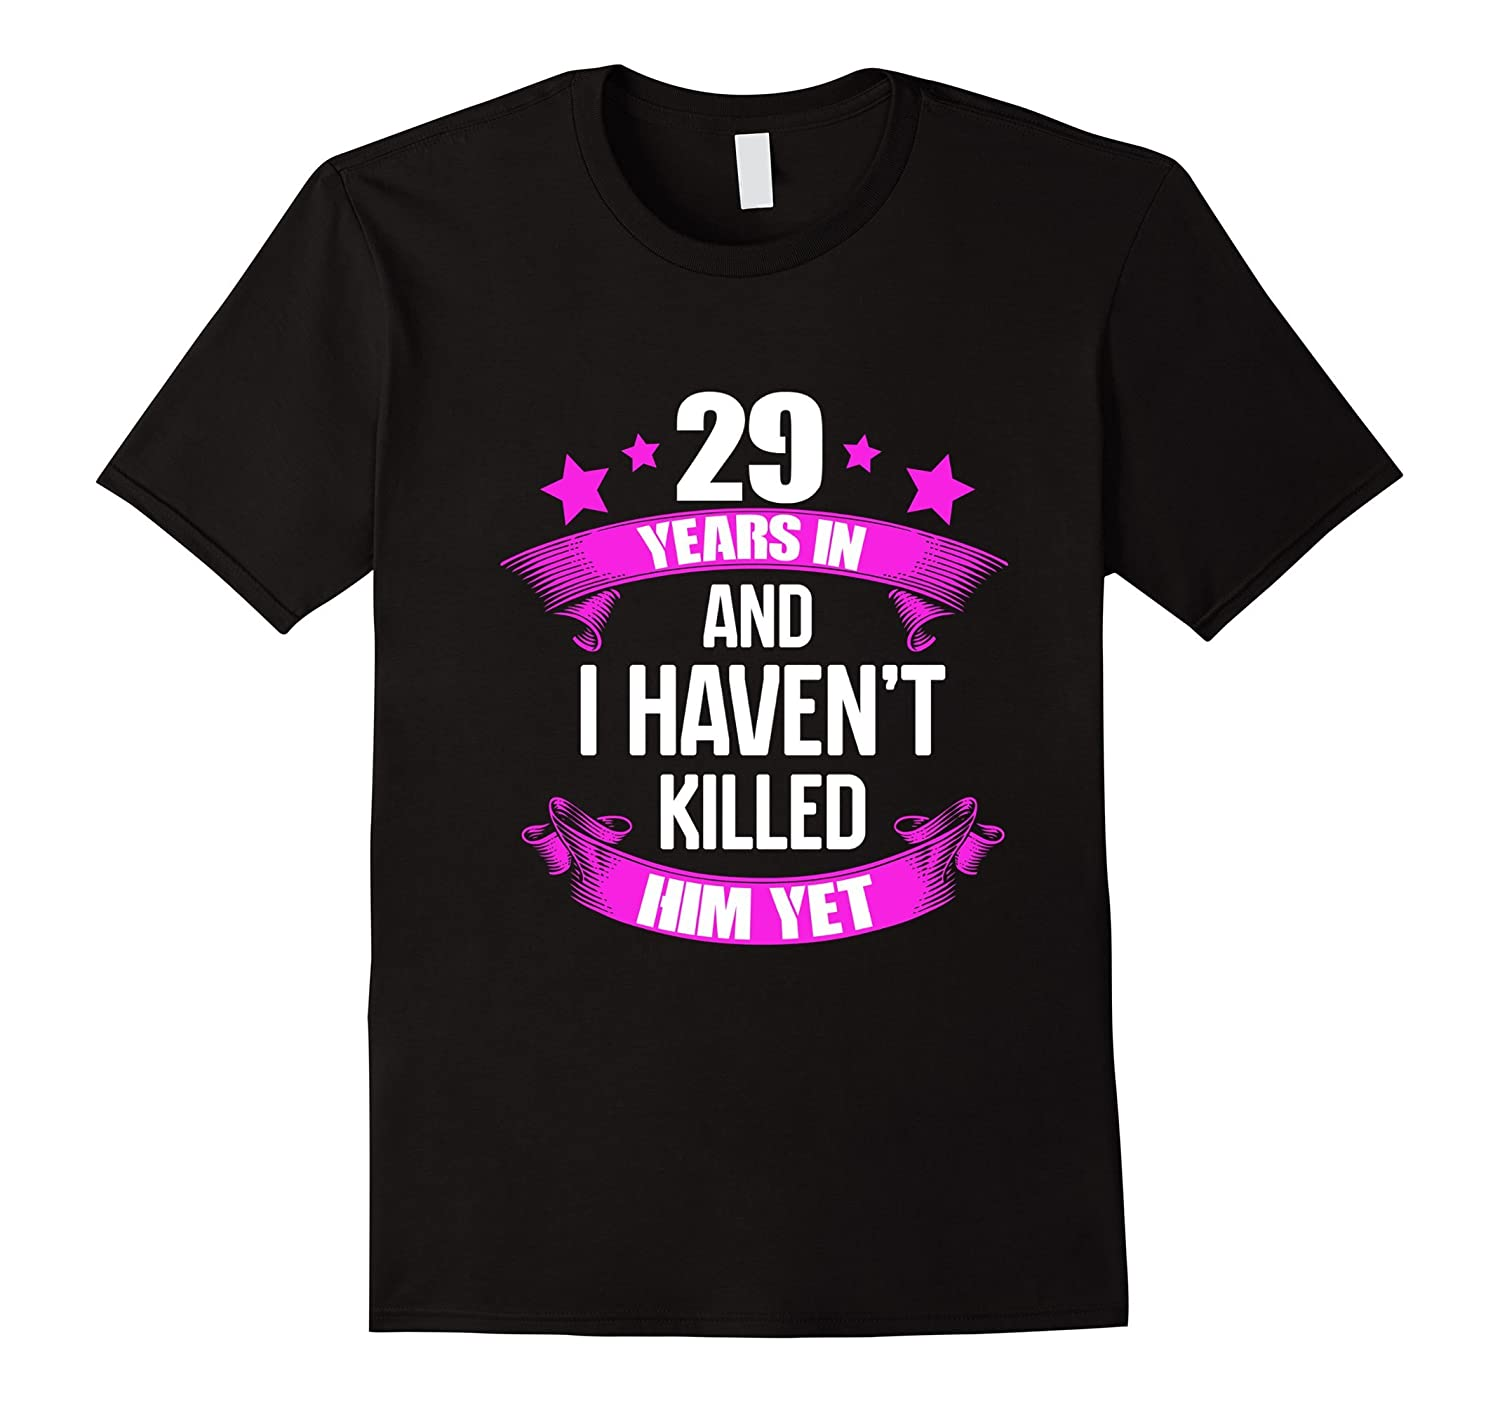 29 Year Wedding Anniversary Gift: 29th Wedding Anniversary T-Shirt For Wife. Funny Gifts